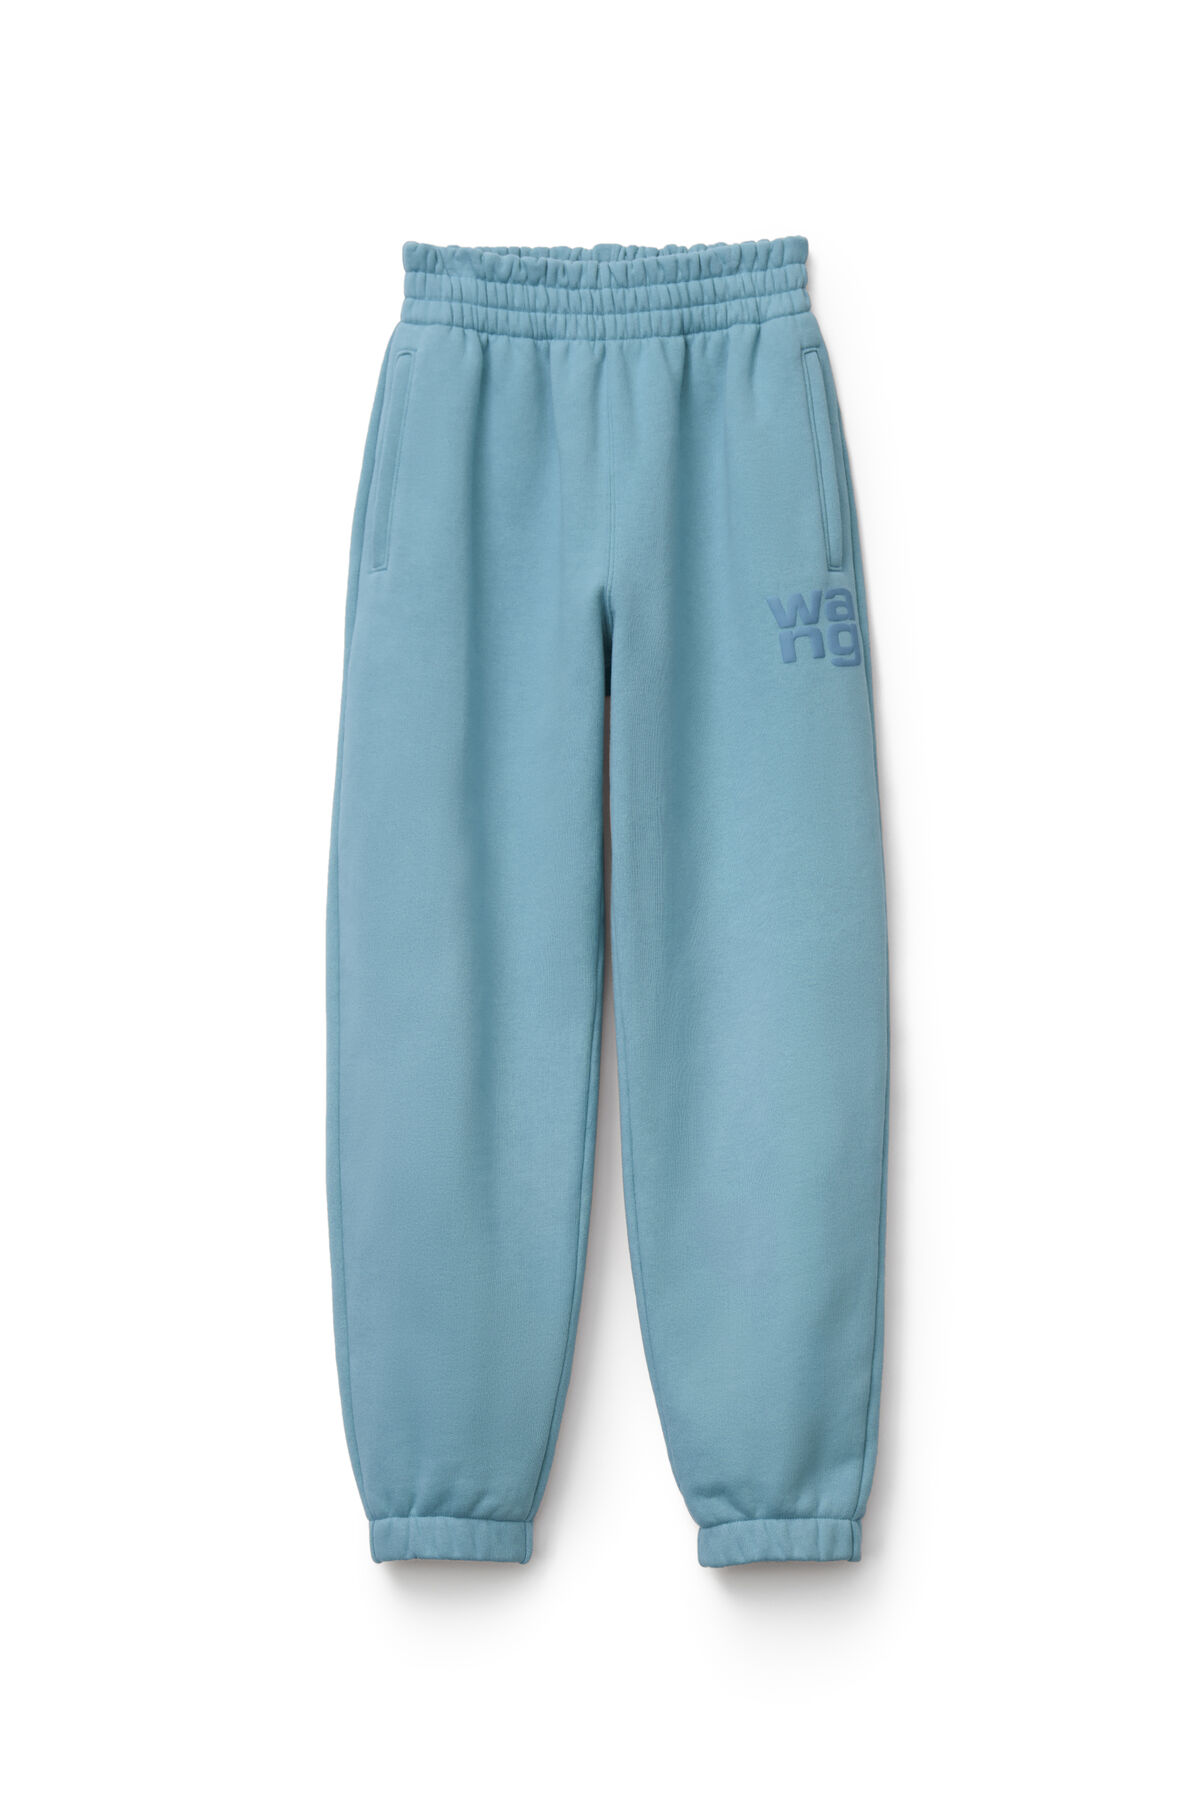 FOUNDATION TERRY SWEATPANT by Alexander Wang, available on alexanderwang.com for $180 Kylie Jenner Pants SIMILAR PRODUCT